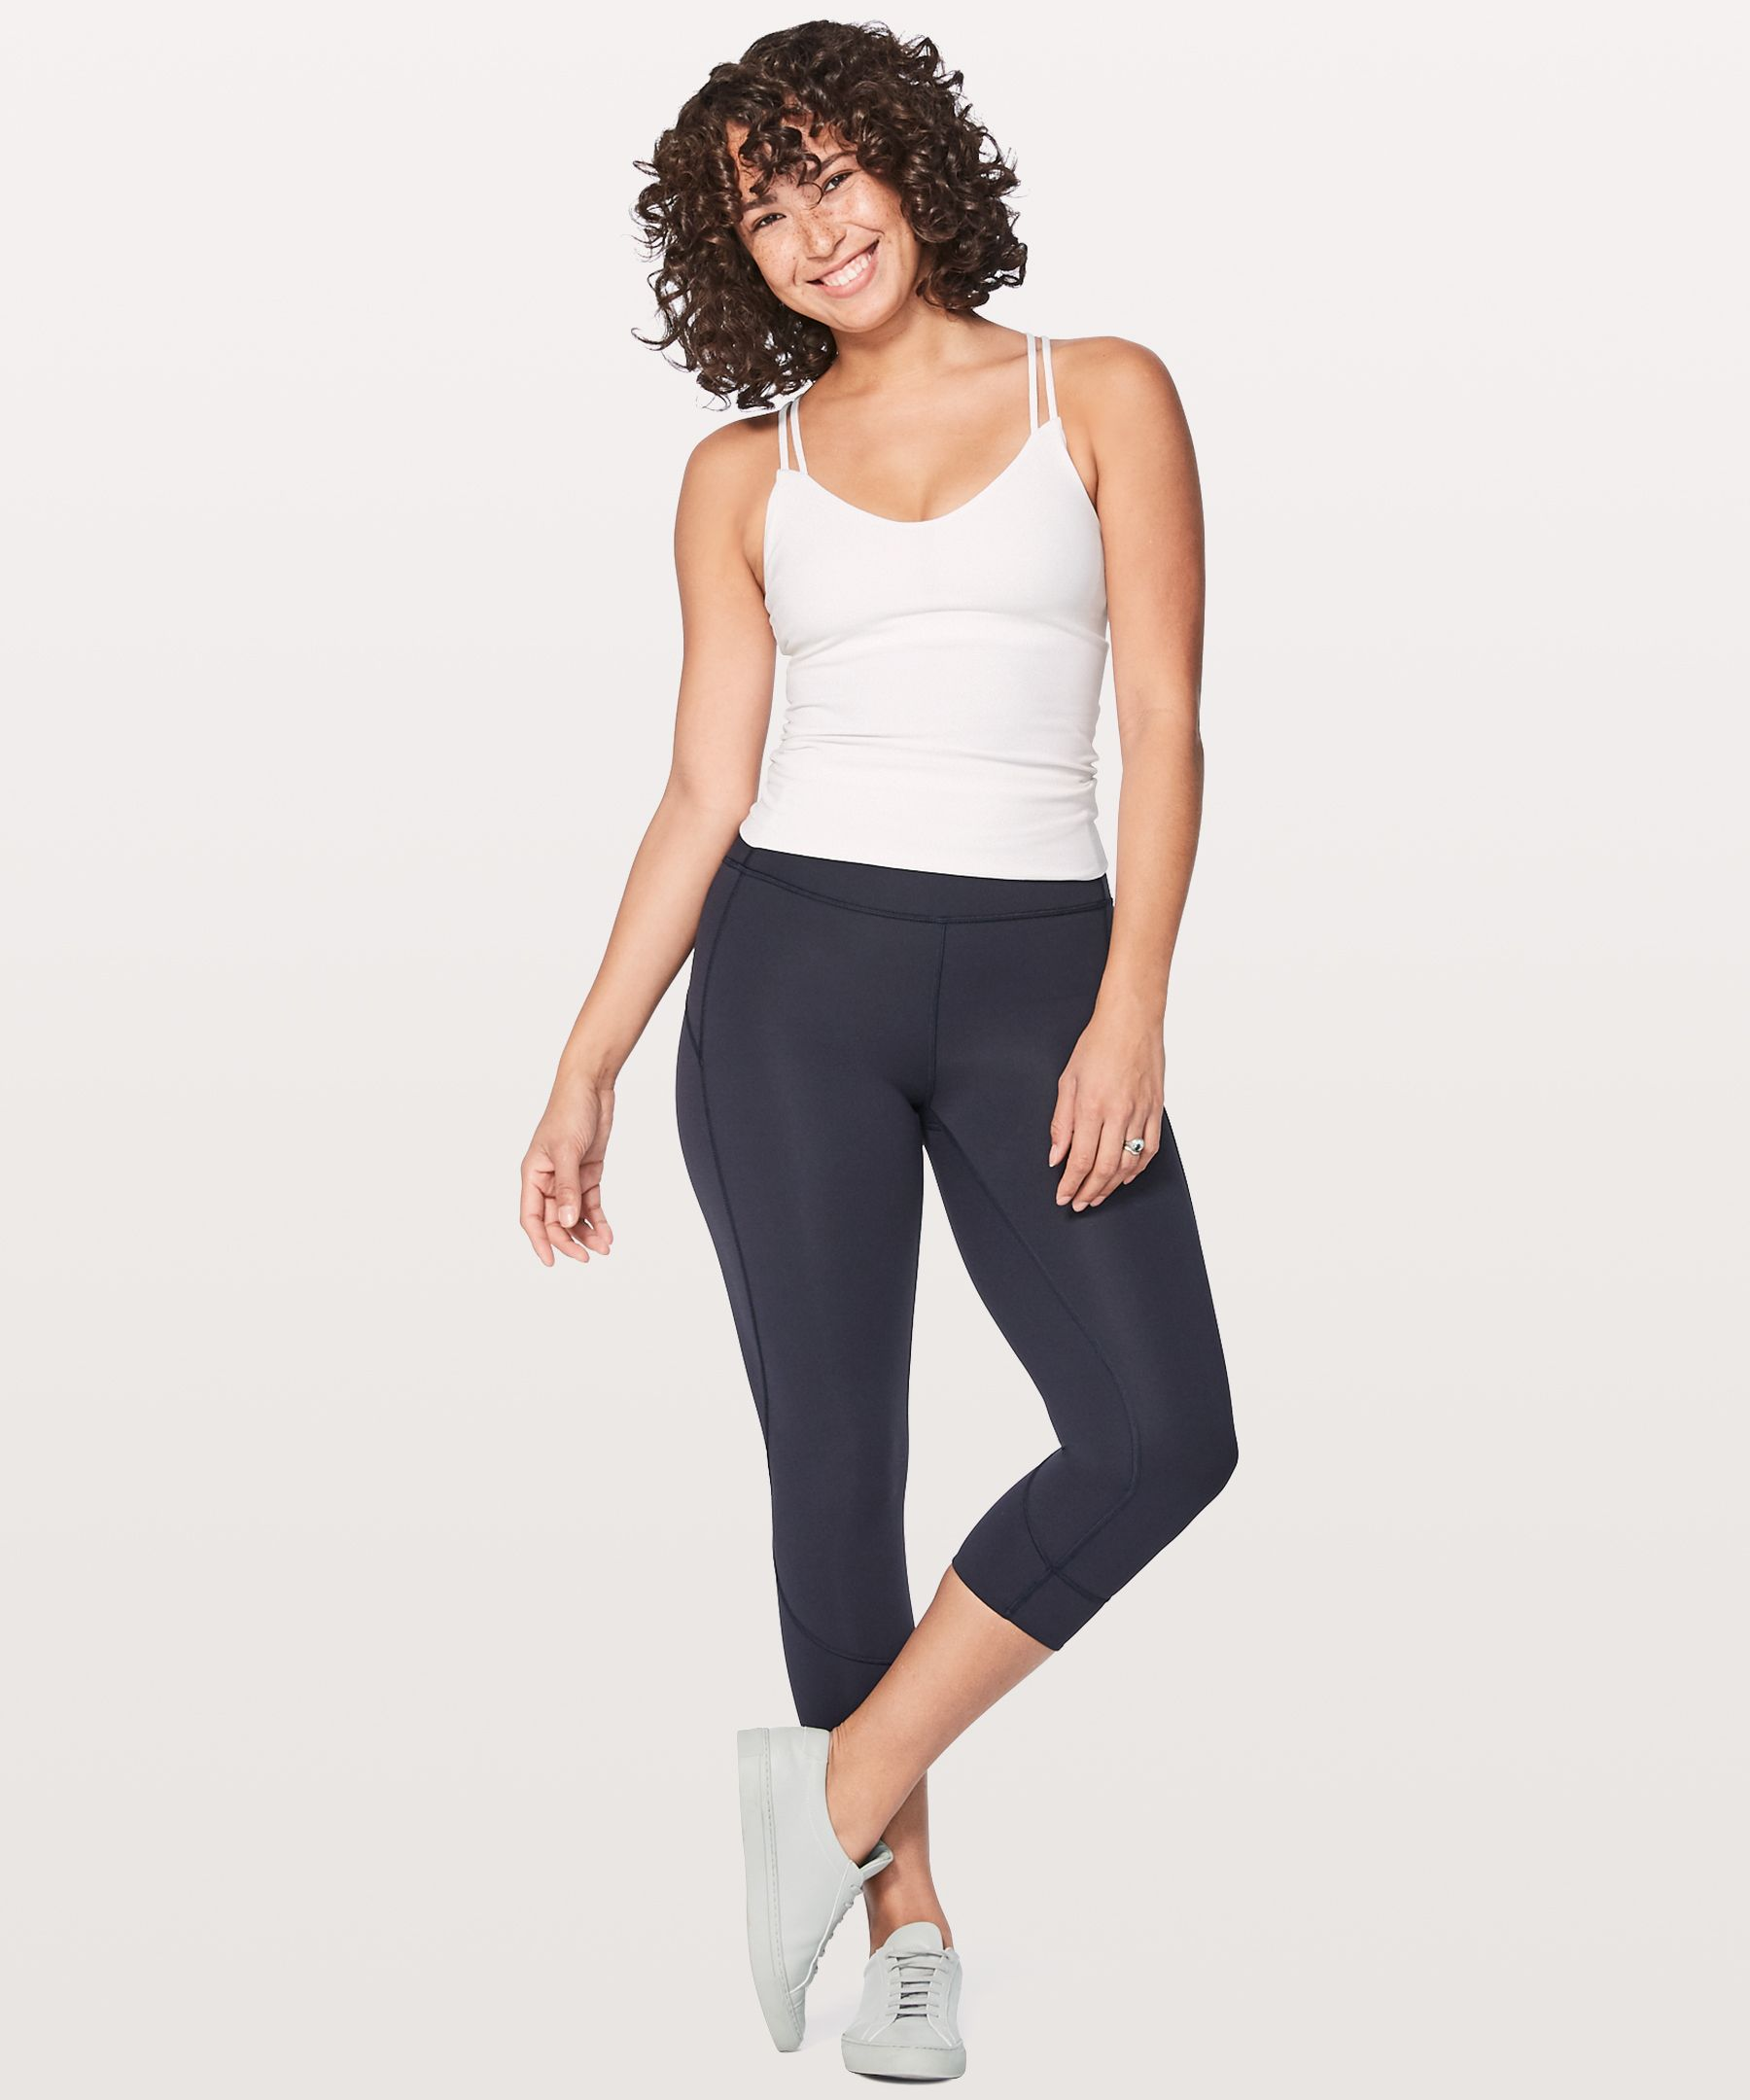 Meet your companion for hot, intense sweat sessions. Made with breathable, cool-on-the-skin Everlux™ fabric, these sleek crops wick sweat and dry in a flash so you can keep your mind on your movement.